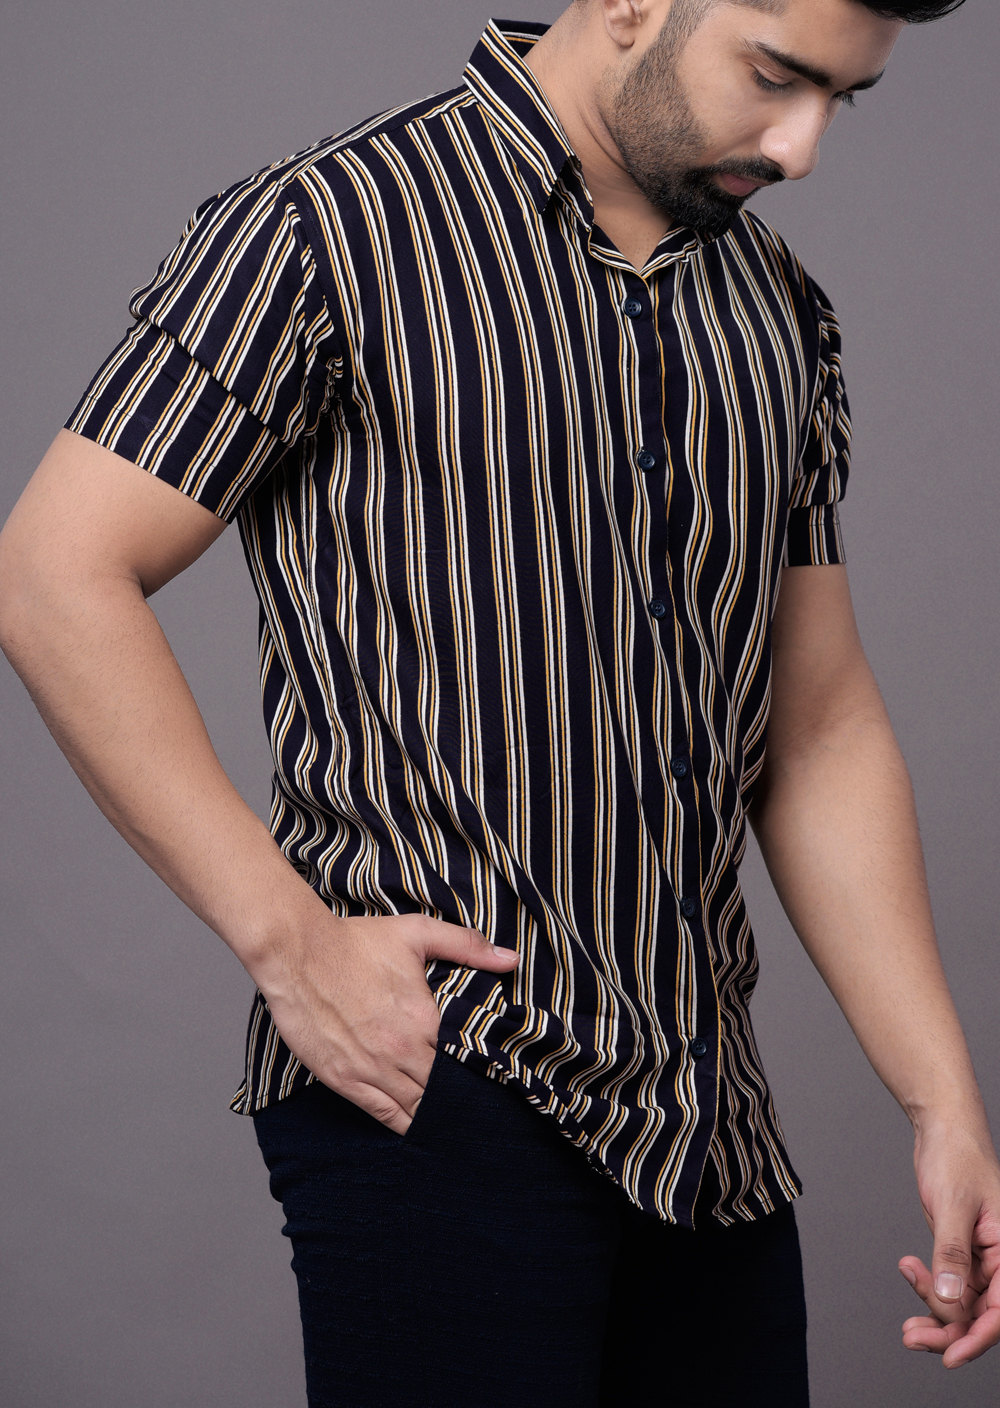 Flowing striped shirt